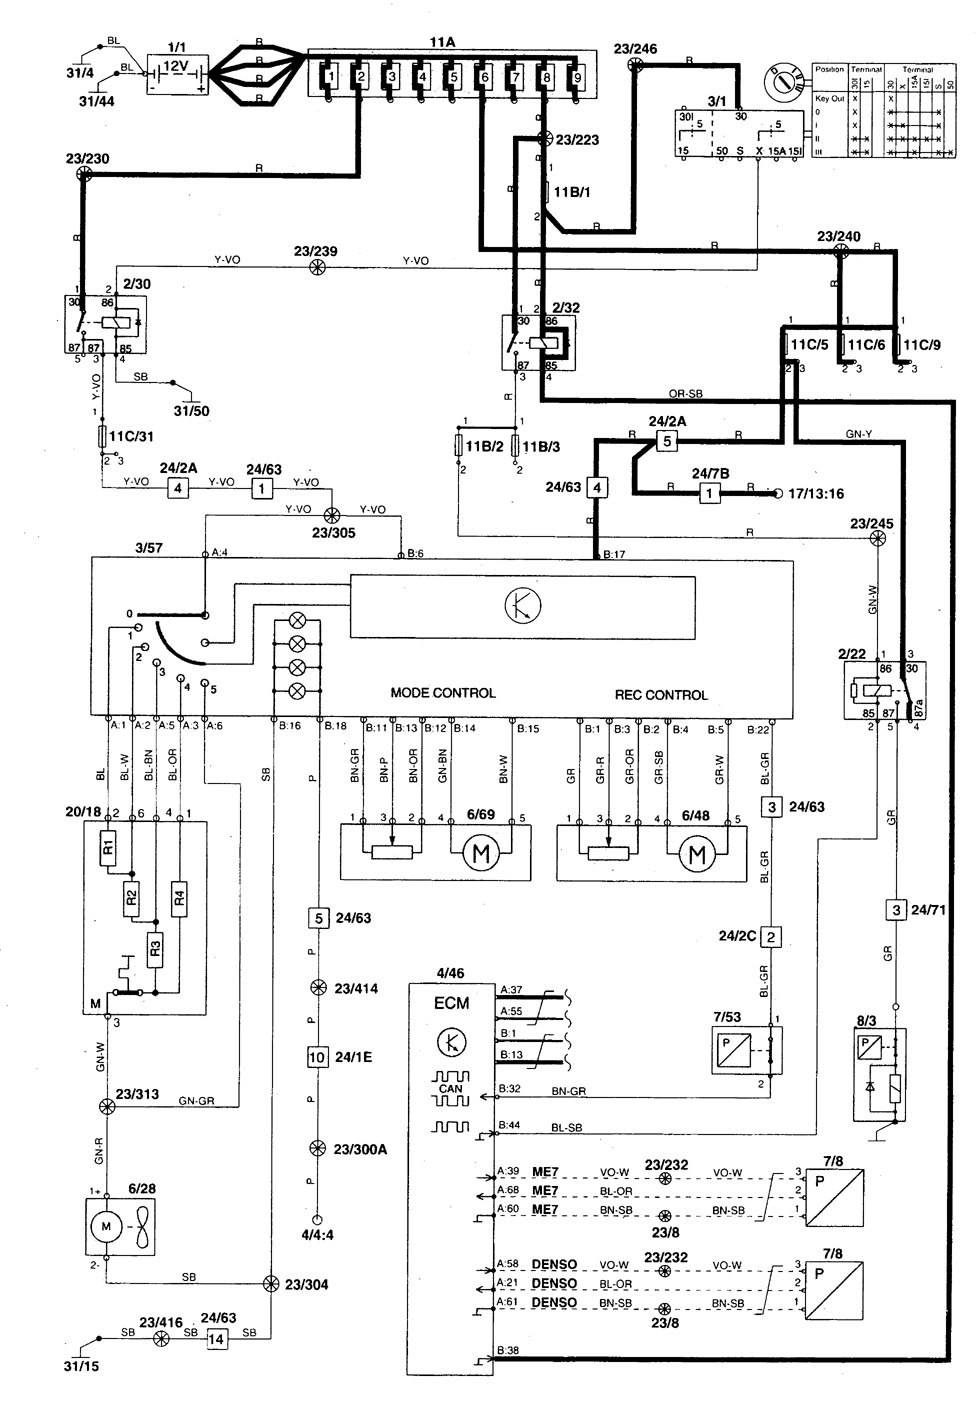 [DIAGRAM_5NL]  A4AC65 Wiring Diagram 1998 Volvo V70 Glt | Wiring Resources | Volvo V70 Schematics |  | Wiring Resources